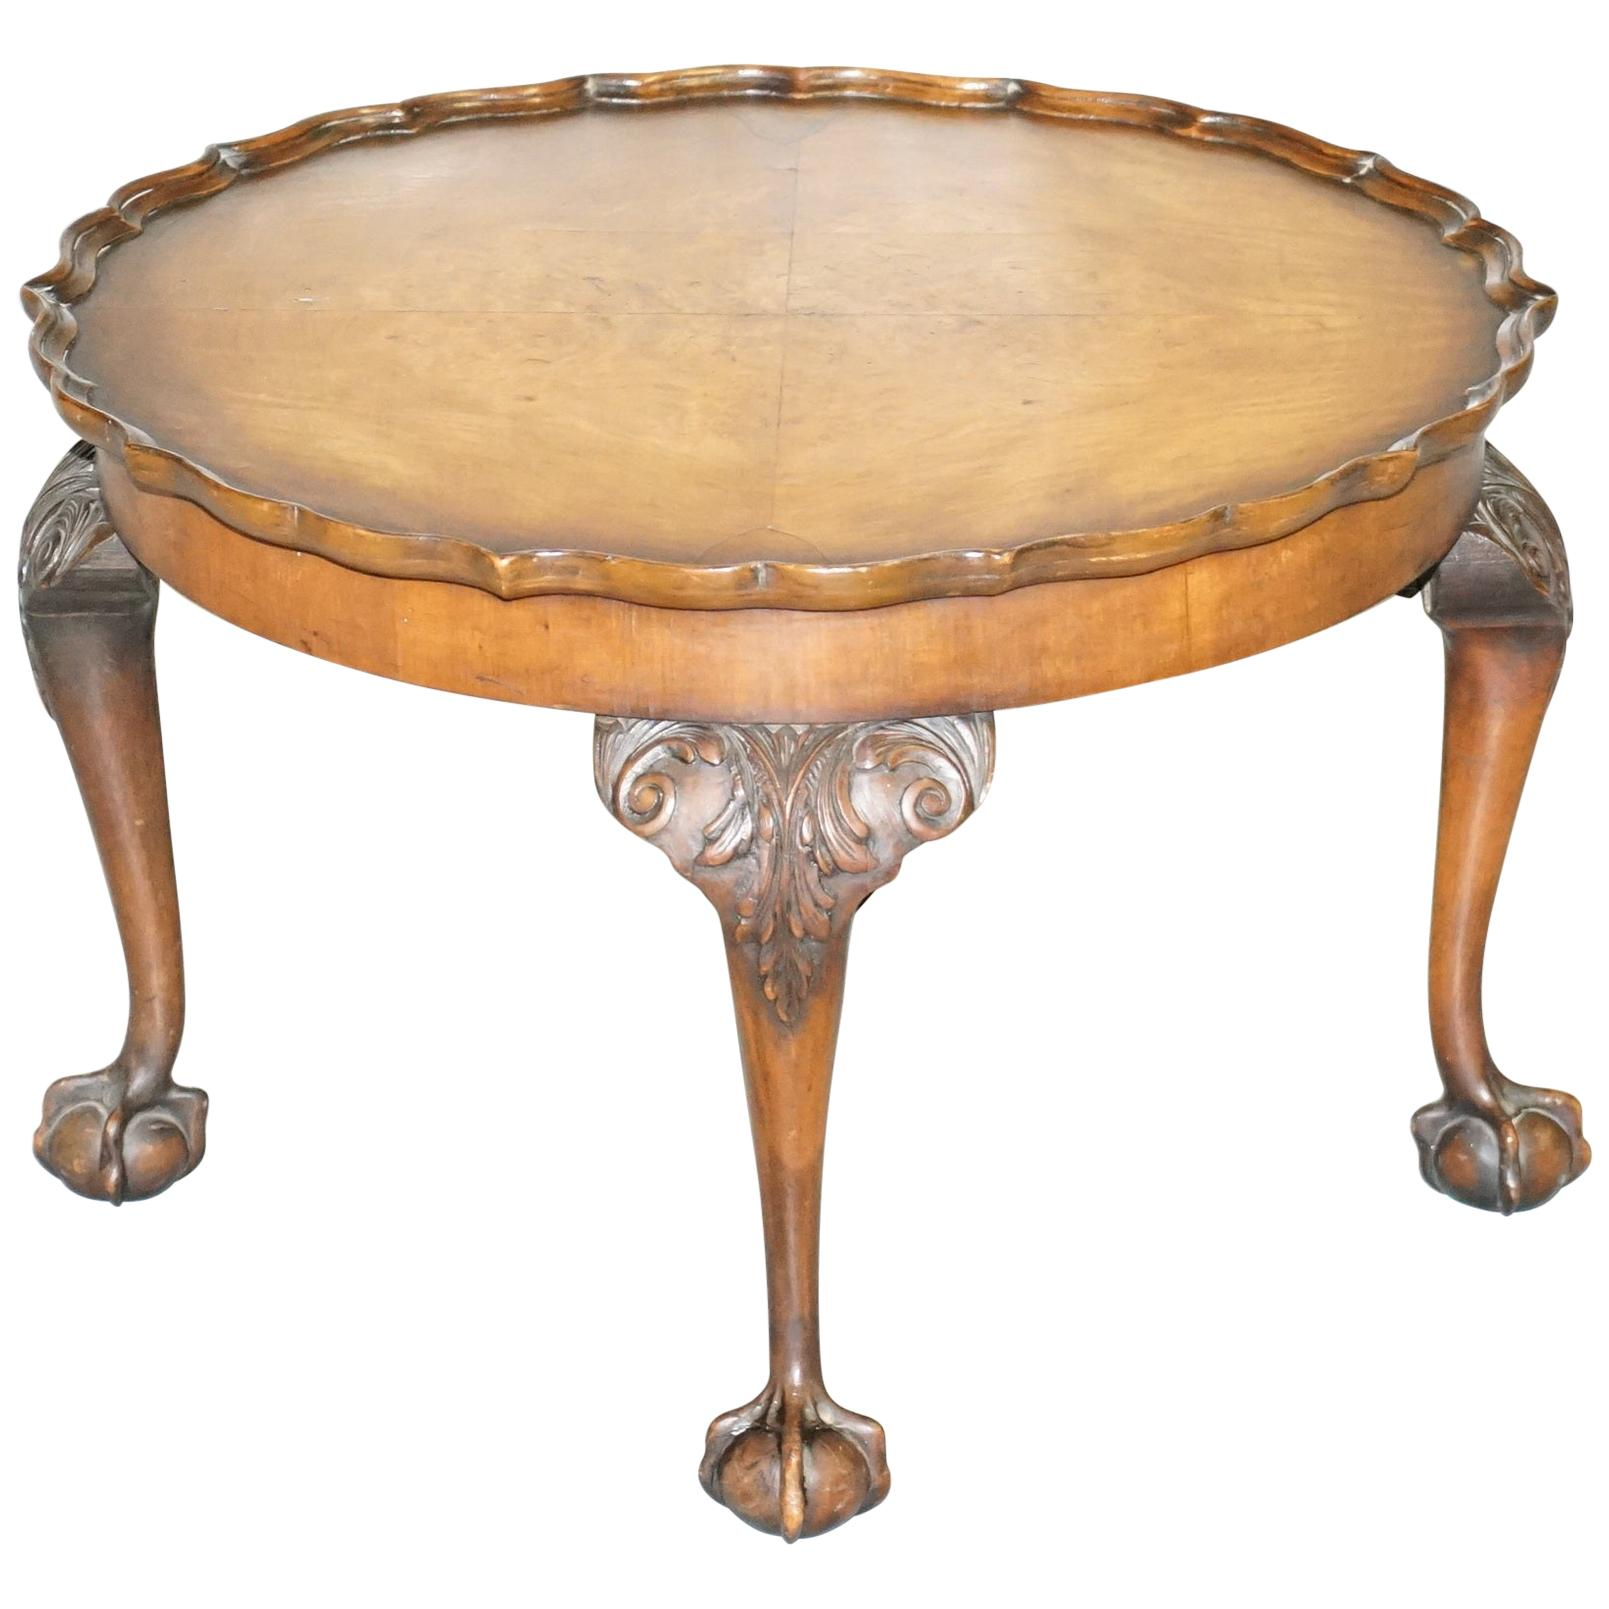 Ornately Carved Vintage Claw & Ball Coffee Table Pie Crust Edge Solid Walnut